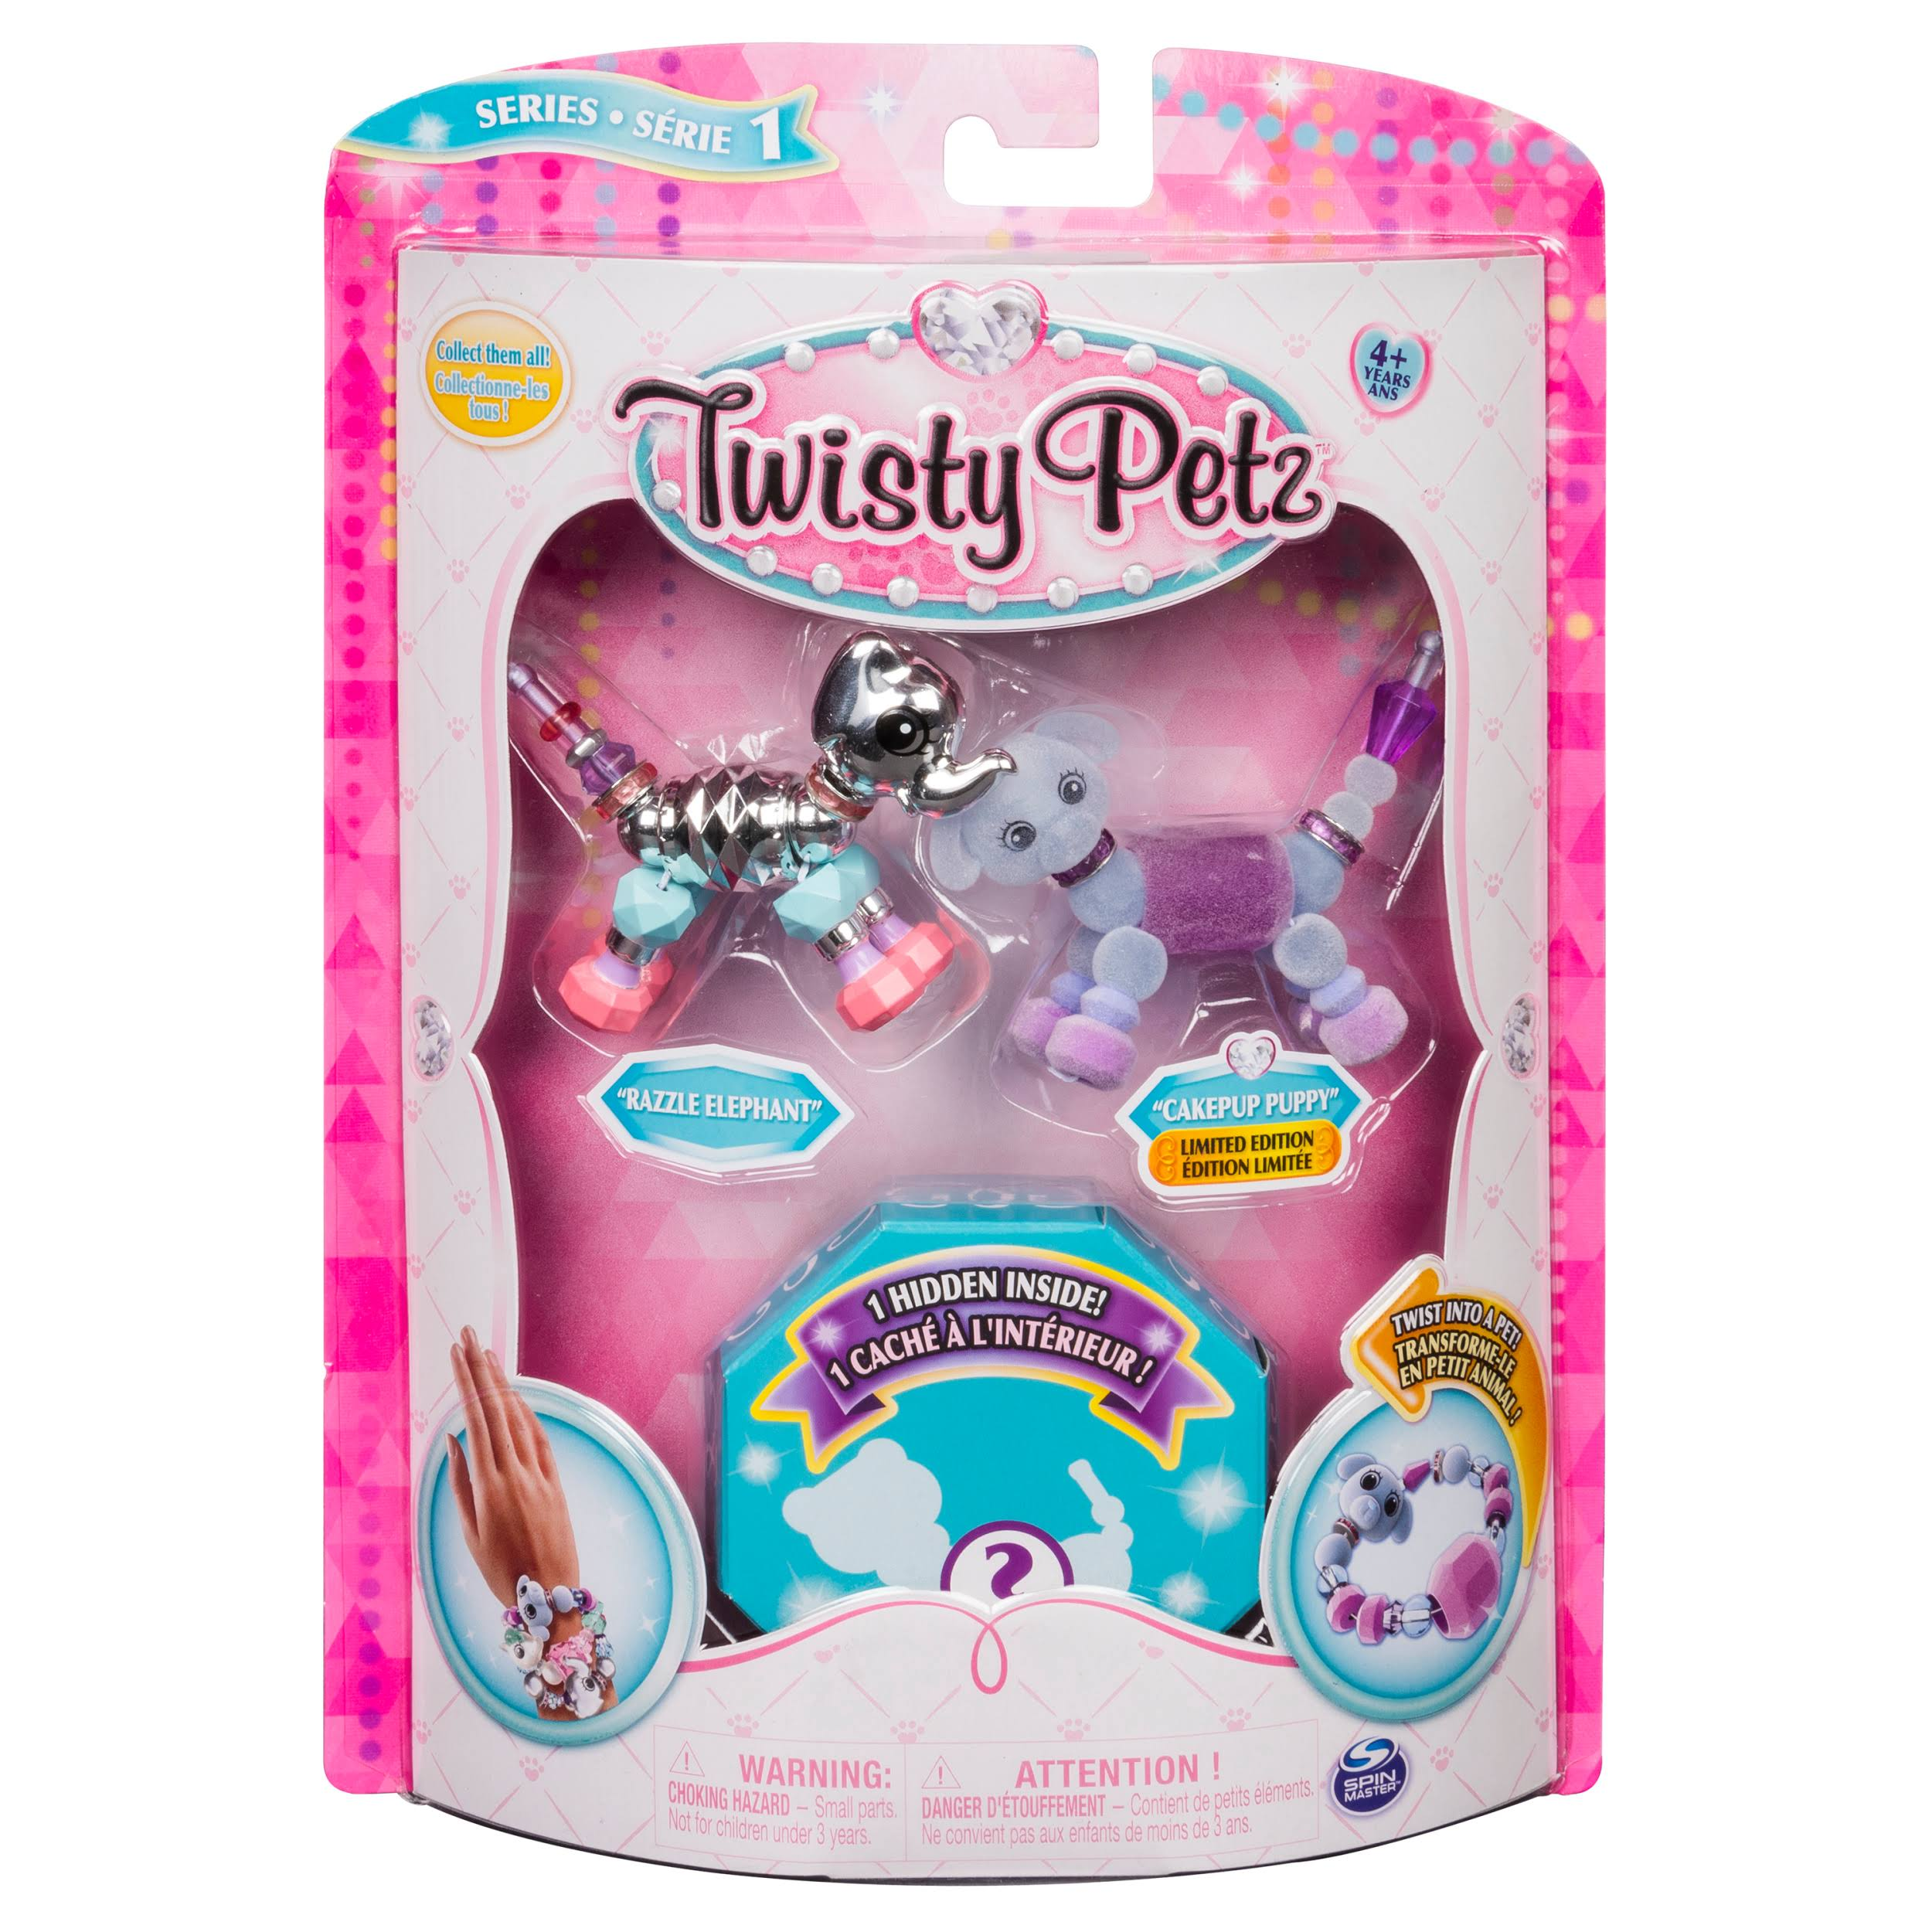 Twisty Petz Razzle Elephant, Cakepup Puppy and Surprise Collectible Bracelet Set